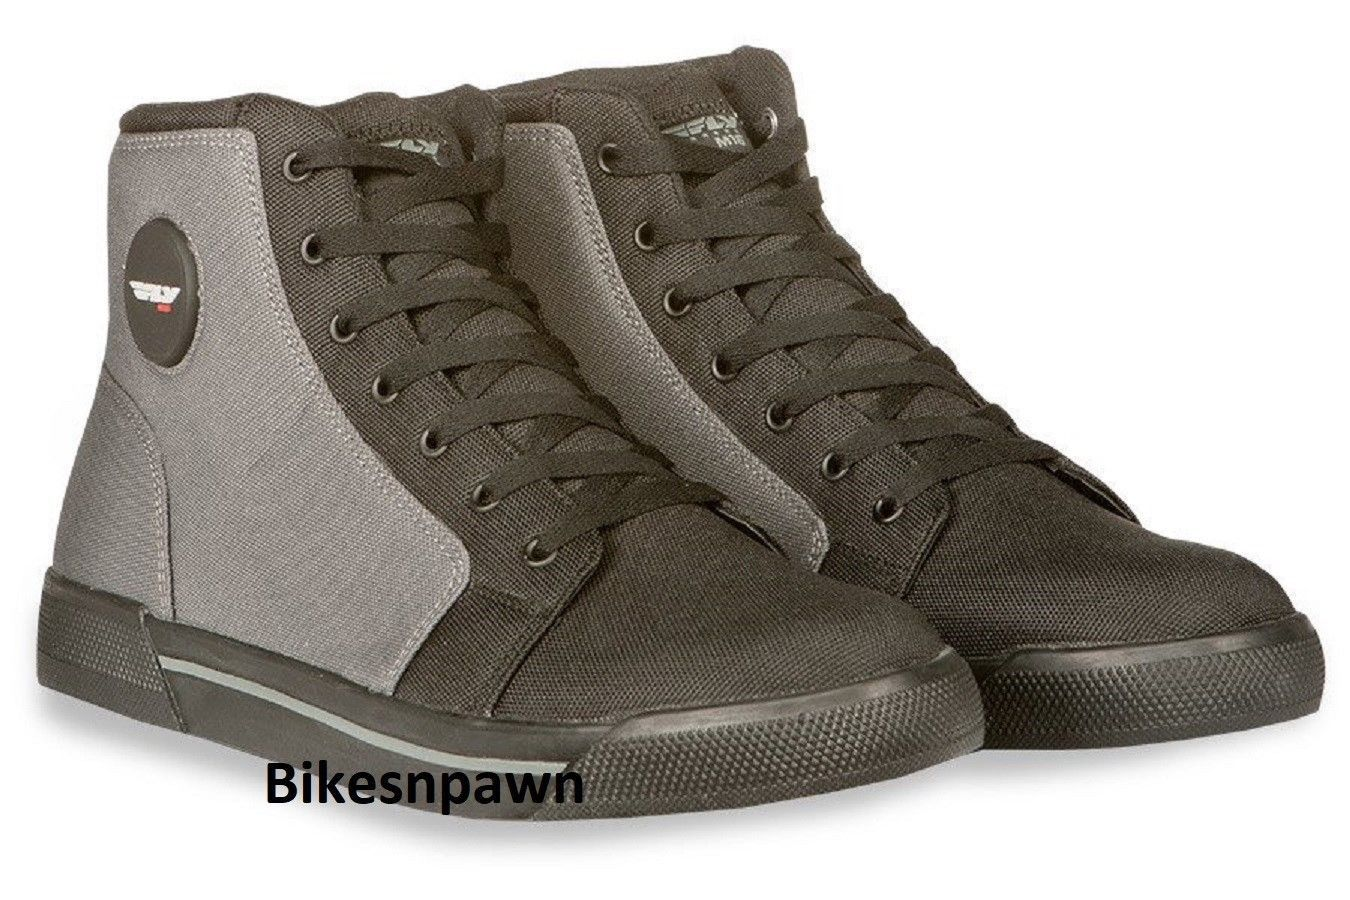 New Size 8 Mens FLY Racing M16 Canvas Motorcycle Street Riding Shoe